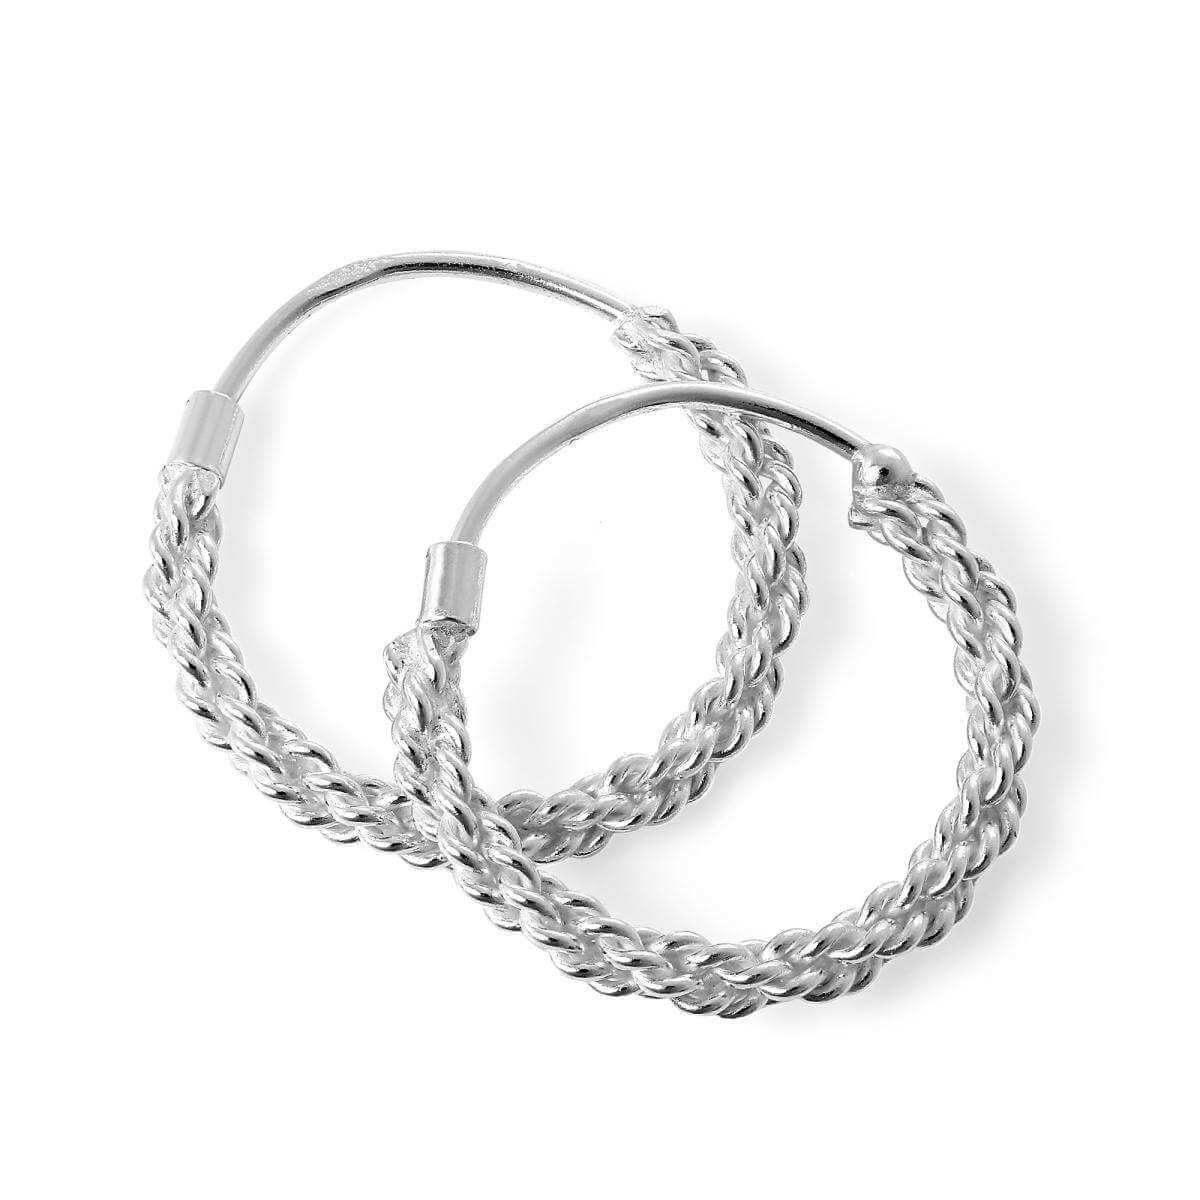 Sterling Silver Twisted Rope Sleeper 16mm Hoop Earrings